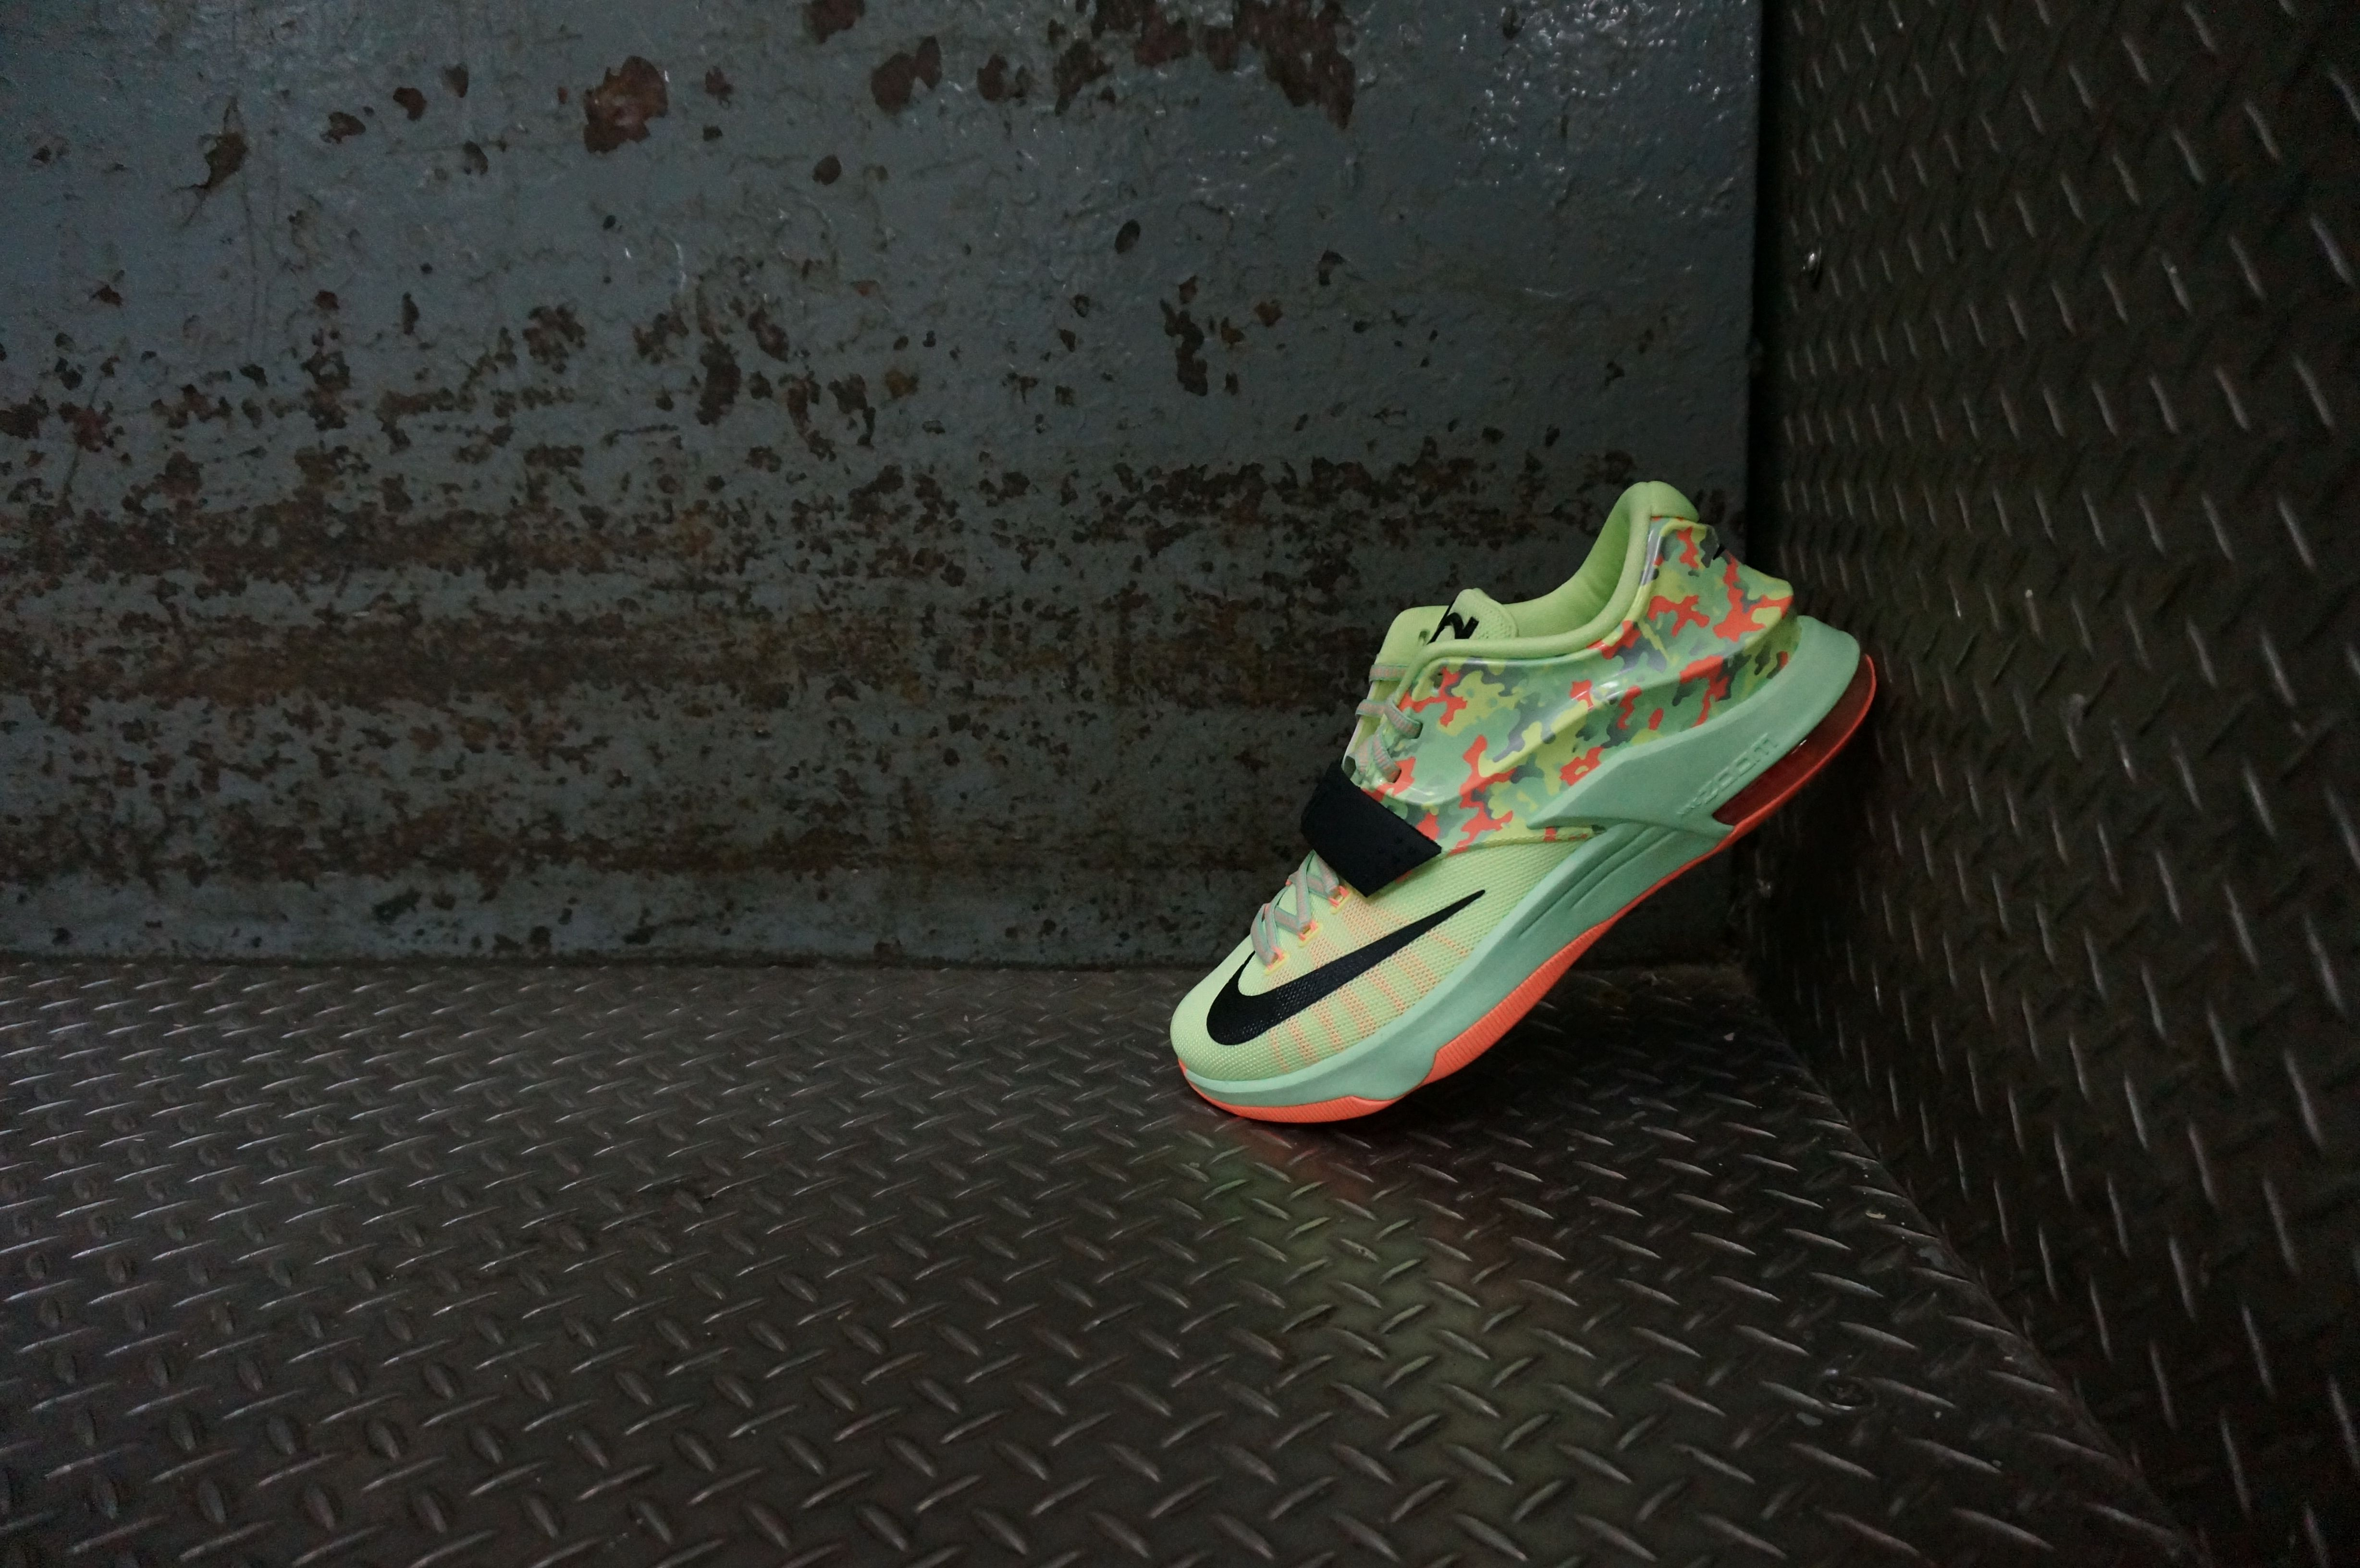 Restock Nike Kd 7 Easter 653996 304 Usd 150 Available On Www Kicks Crew